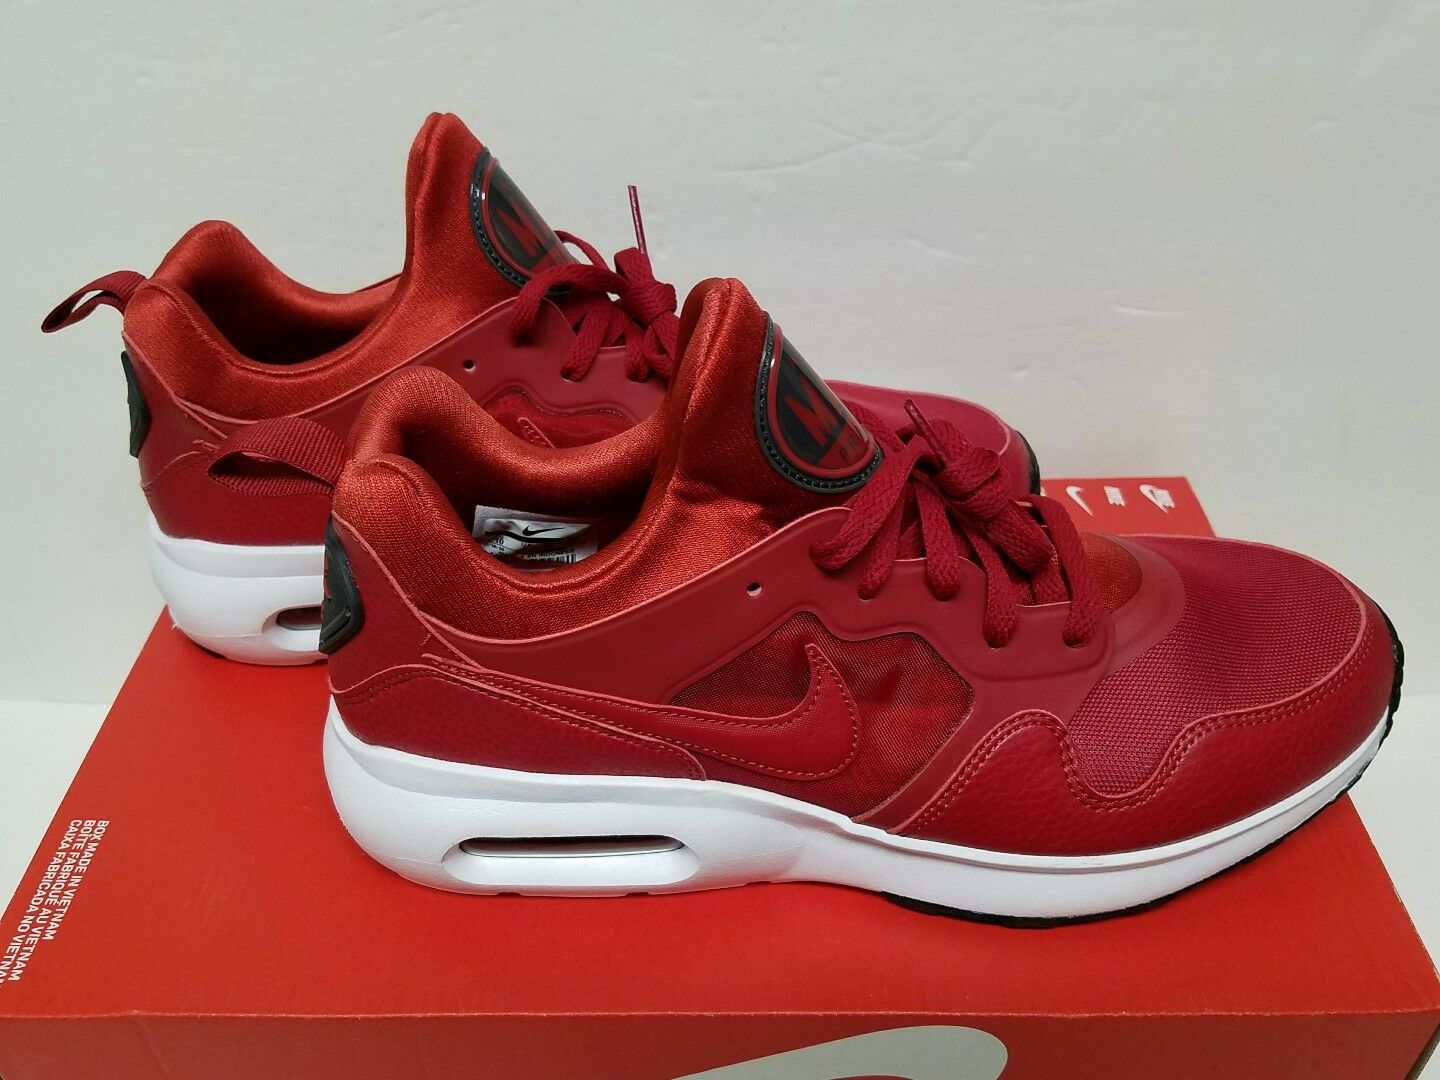 Nike Air Max Prime Size 9, 9.5 & 10 Men's Running Shoes 876068-600